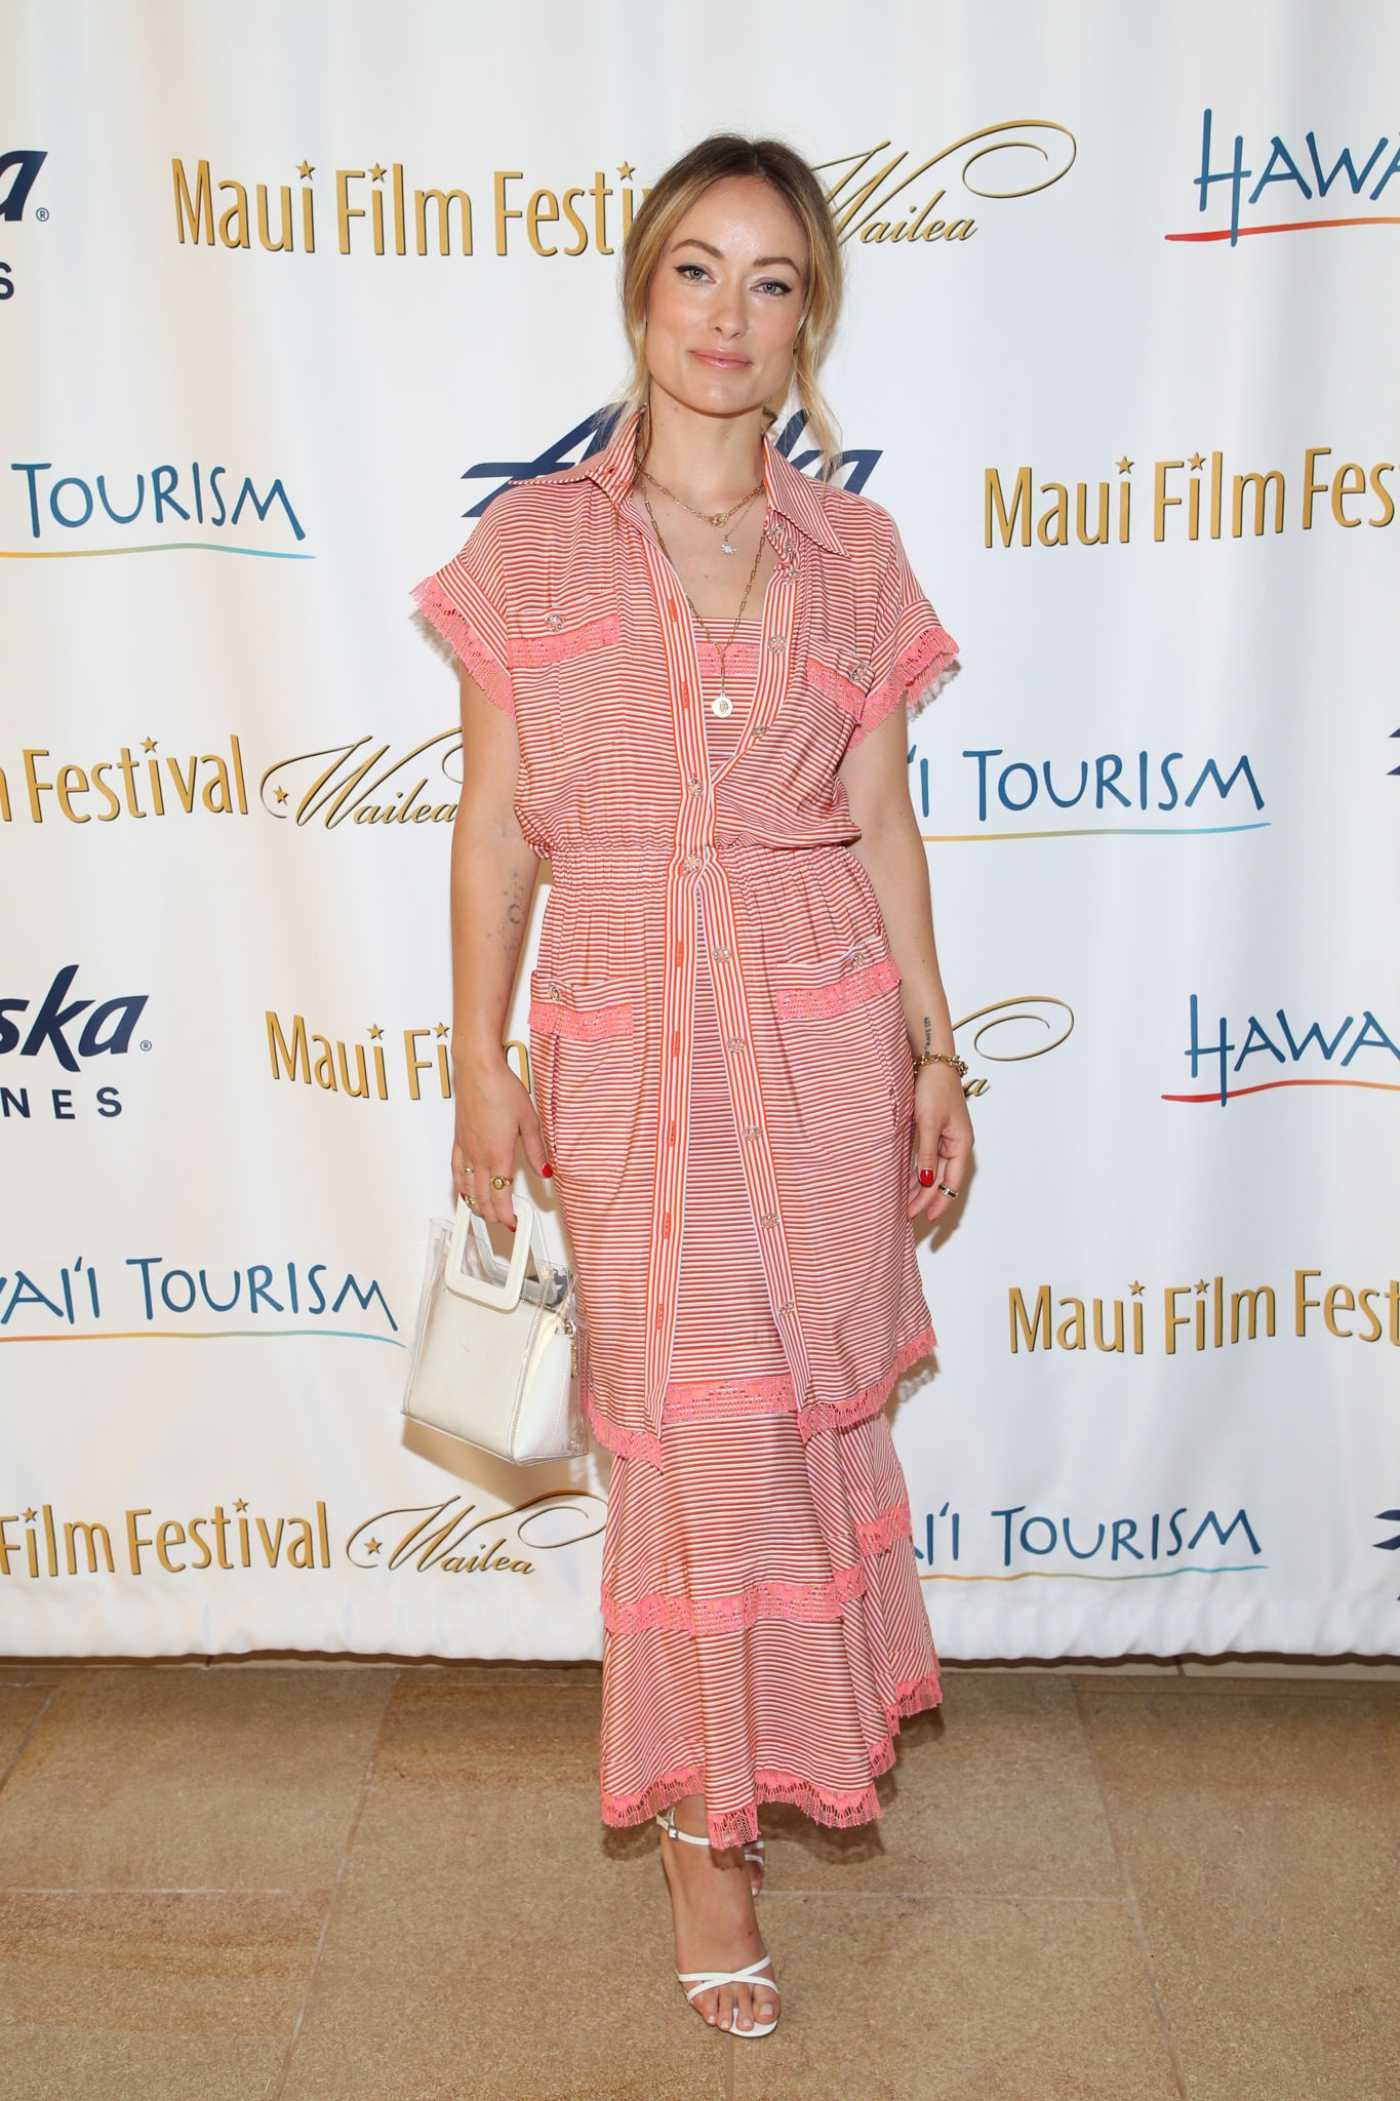 Olivia Wilde Attends the 2019 Maui Film Festival in Wailea, Hawaii 06/16/2019